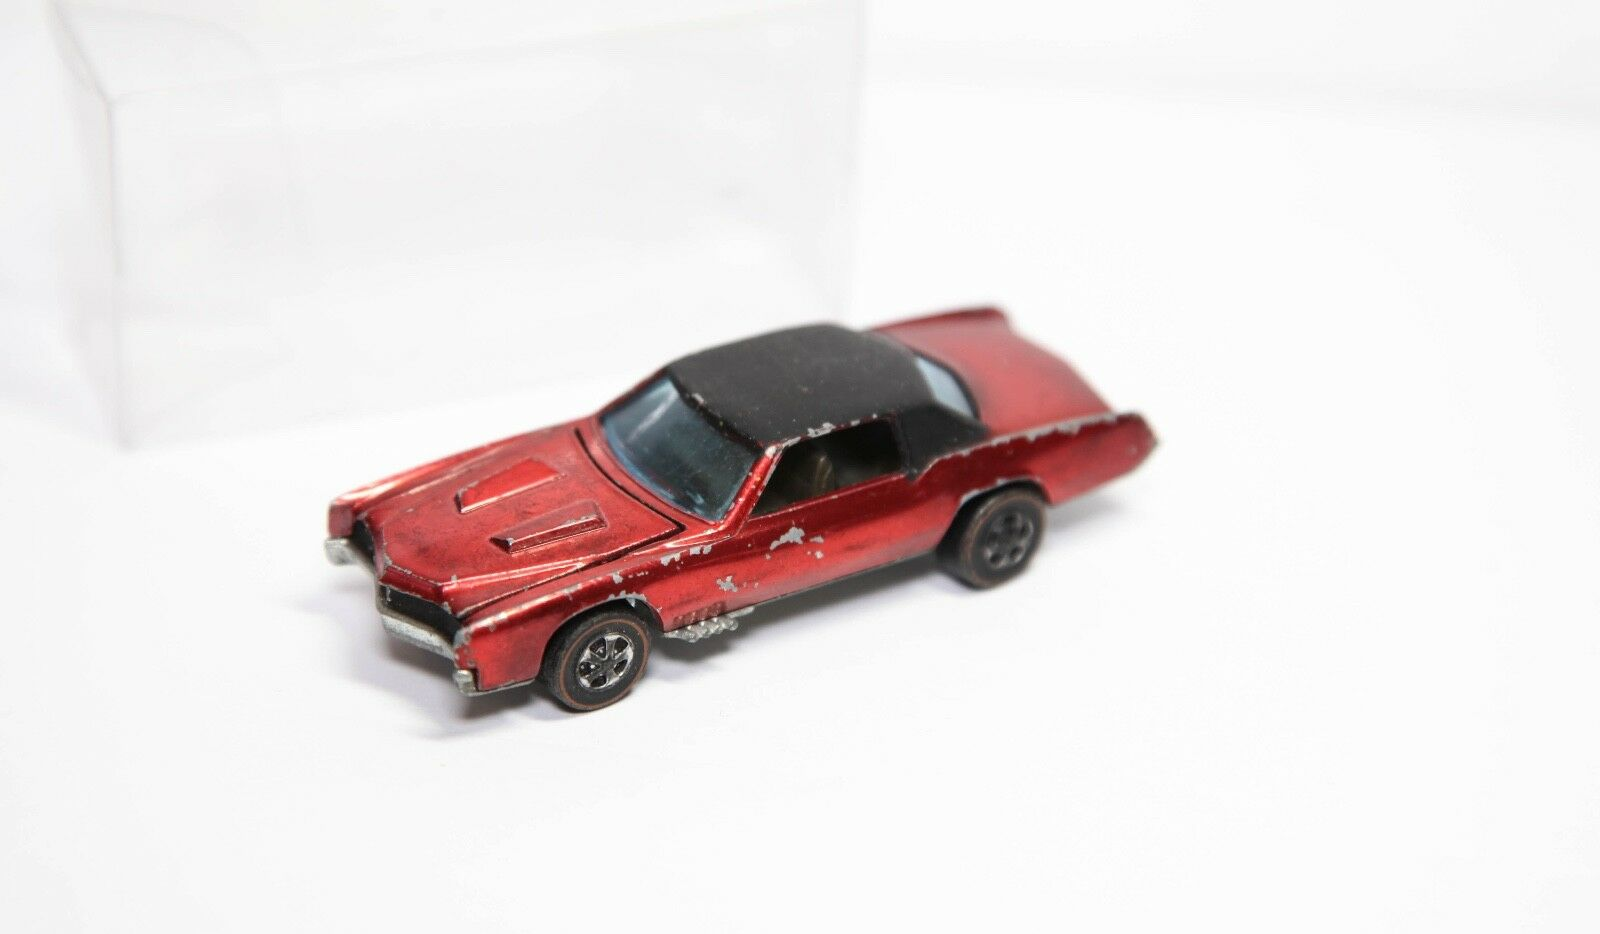 Hot wheels rougeline 1967 Custom Eldorado-Great Vintage Modèle Original Rare